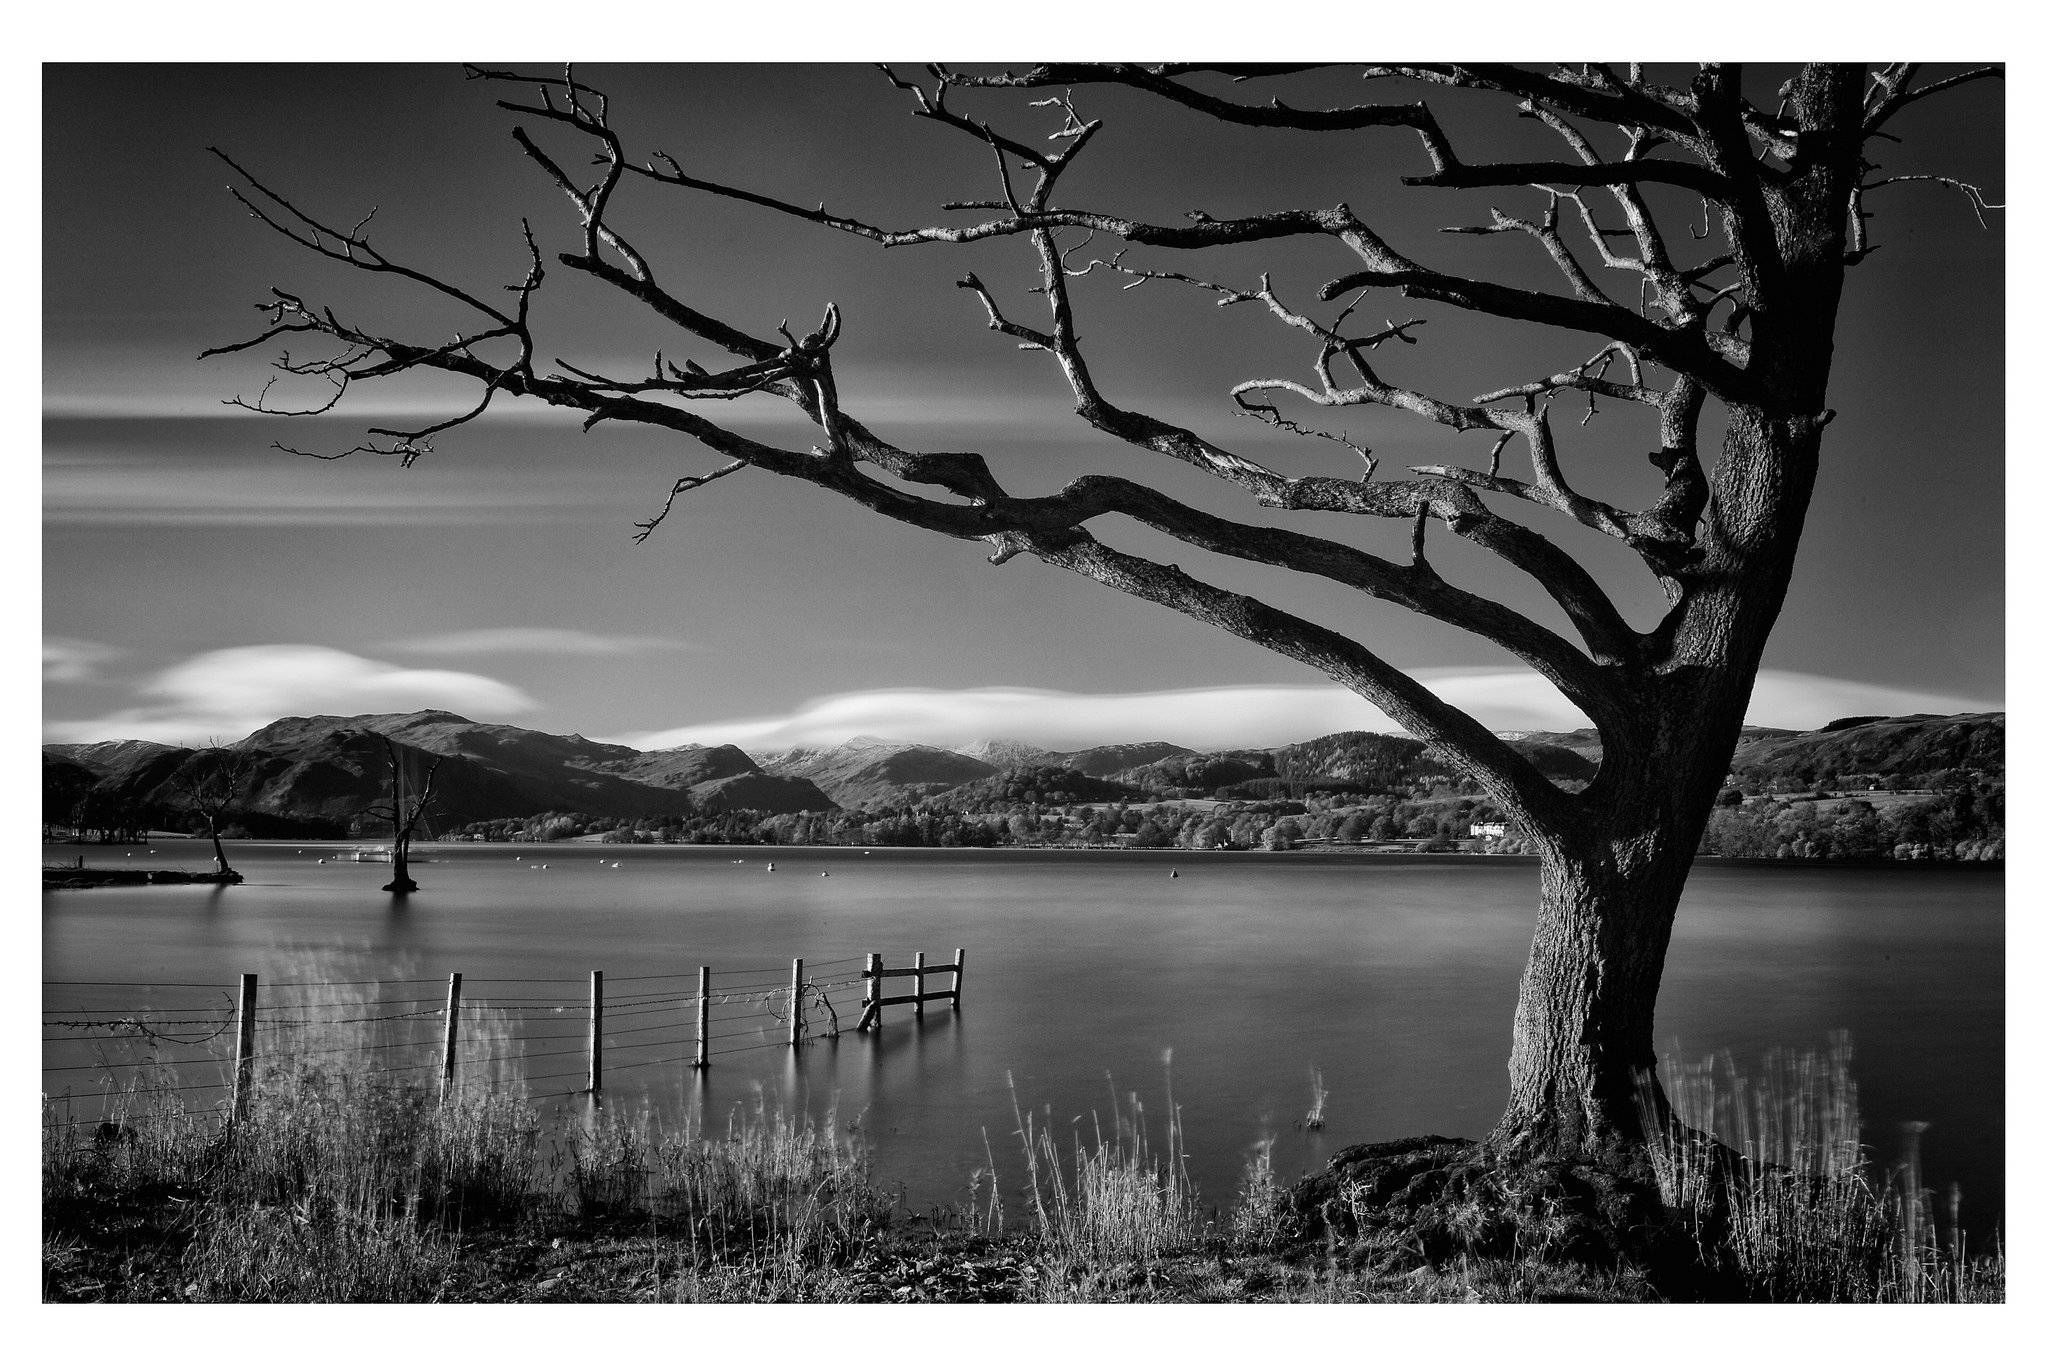 Barnaby Nutt,  200 Seconds Over Ullswater,  shot digitally using a 10-stop neutral density filter.